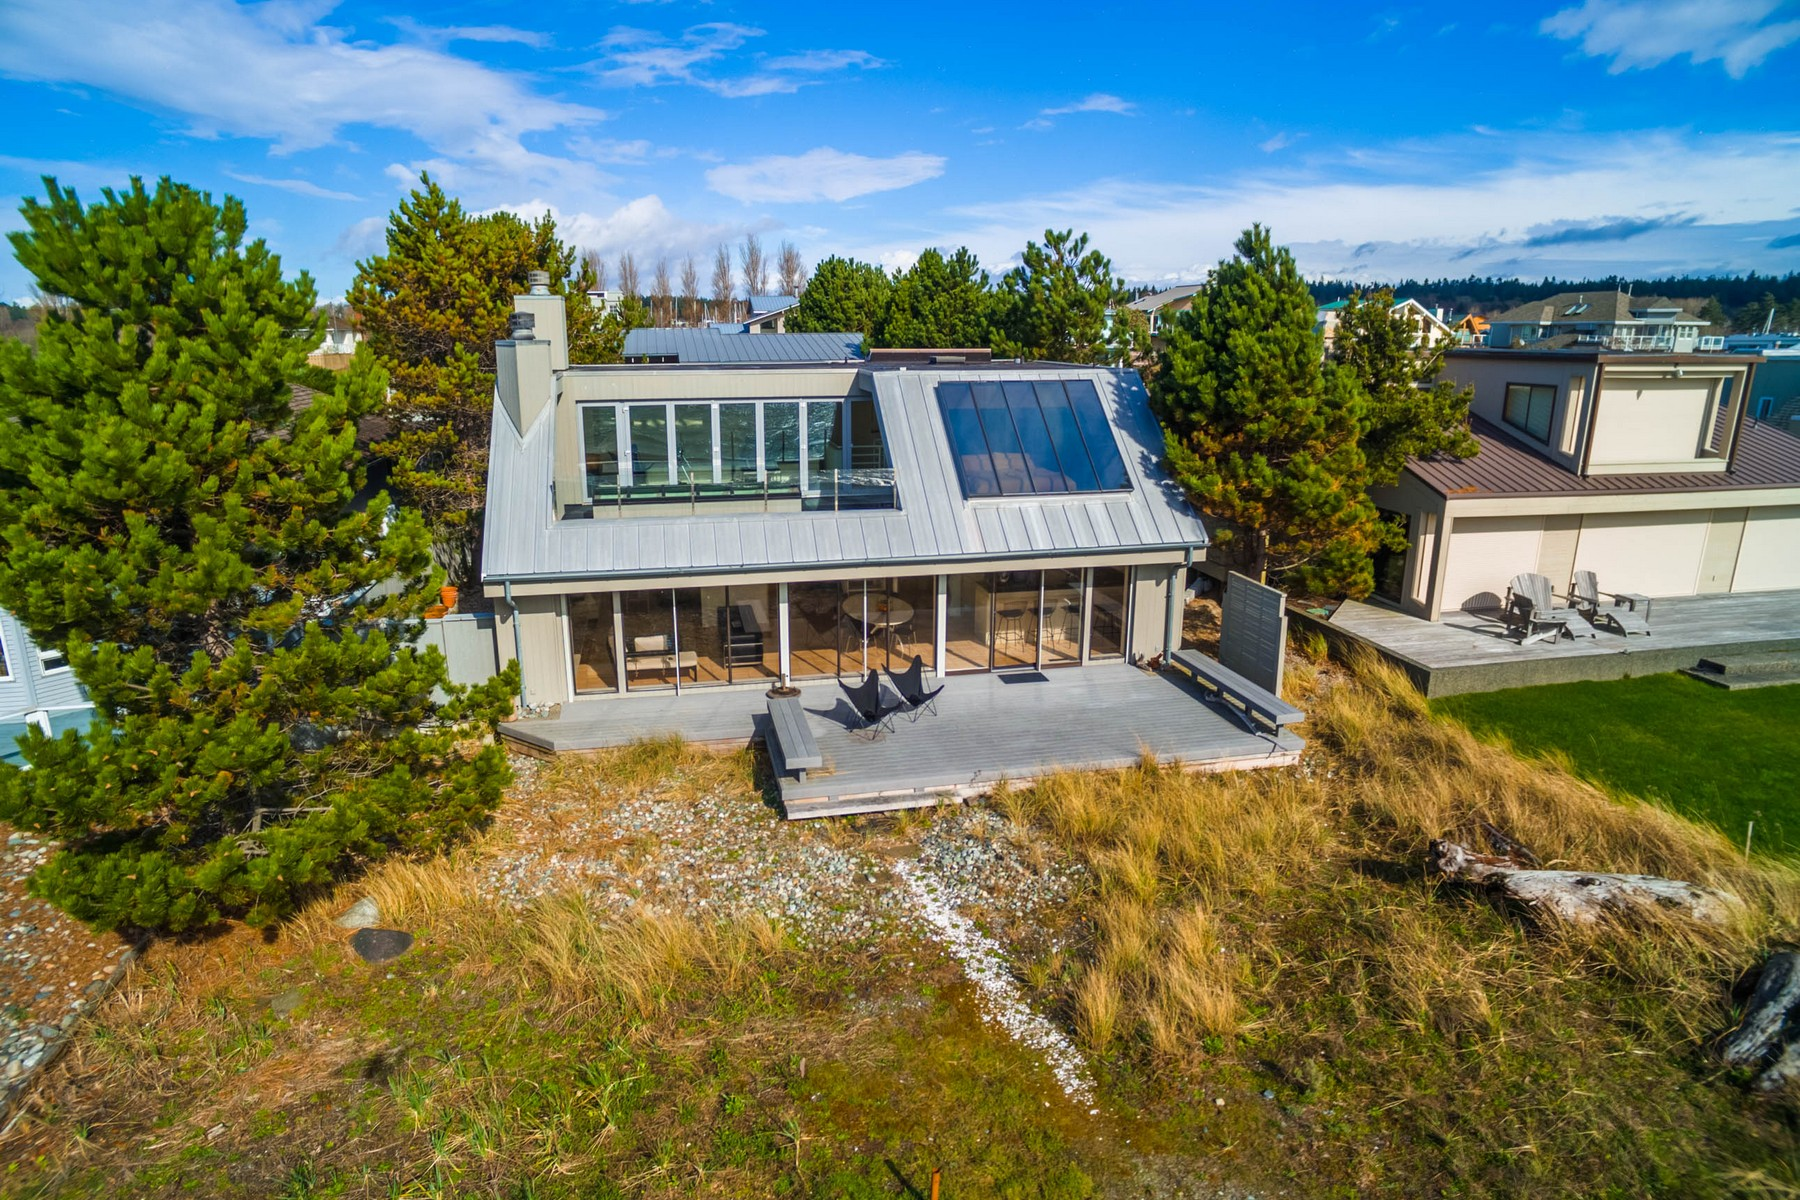 Maison unifamiliale pour l Vente à Beautiful Oceanfront Home in Point Roberts, Washington 1613 Edwards Drive Point Roberts, Washington 98281 États-Unis